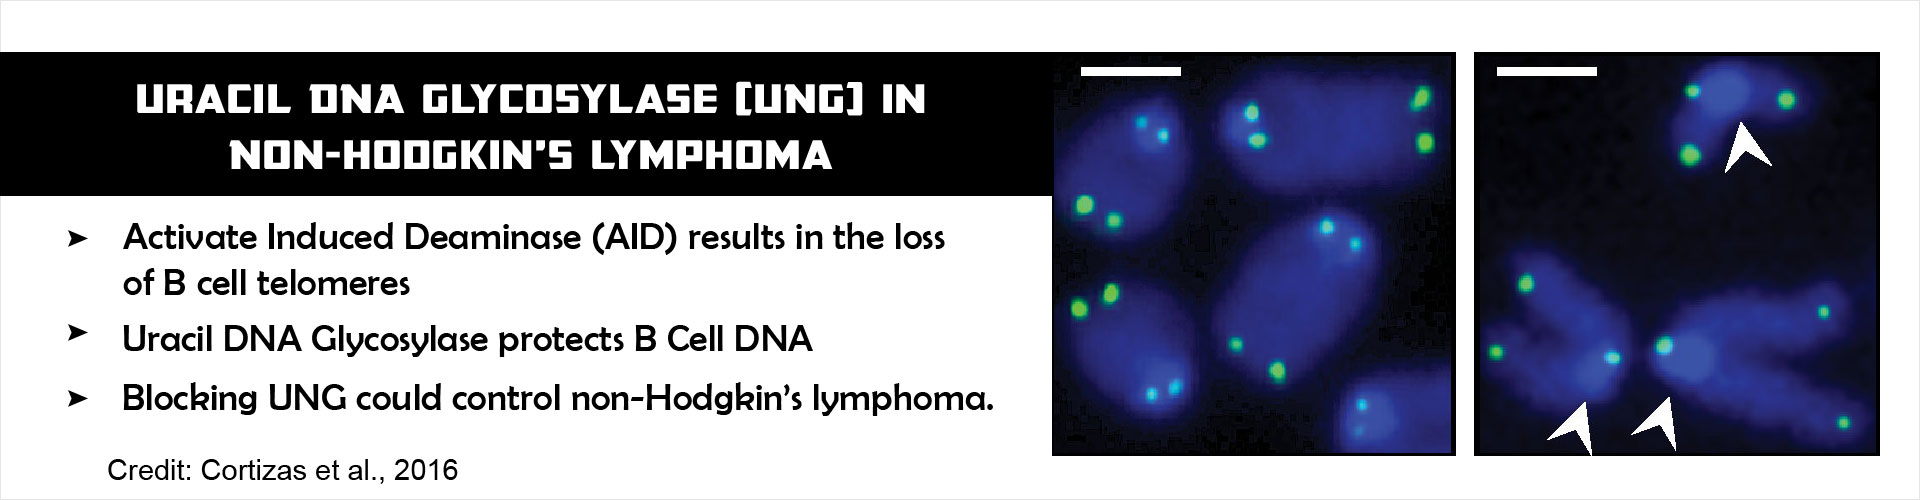 Non-Hodgkin's Lymphoma Aided by Uracil DNA Glycosylase (UNG)